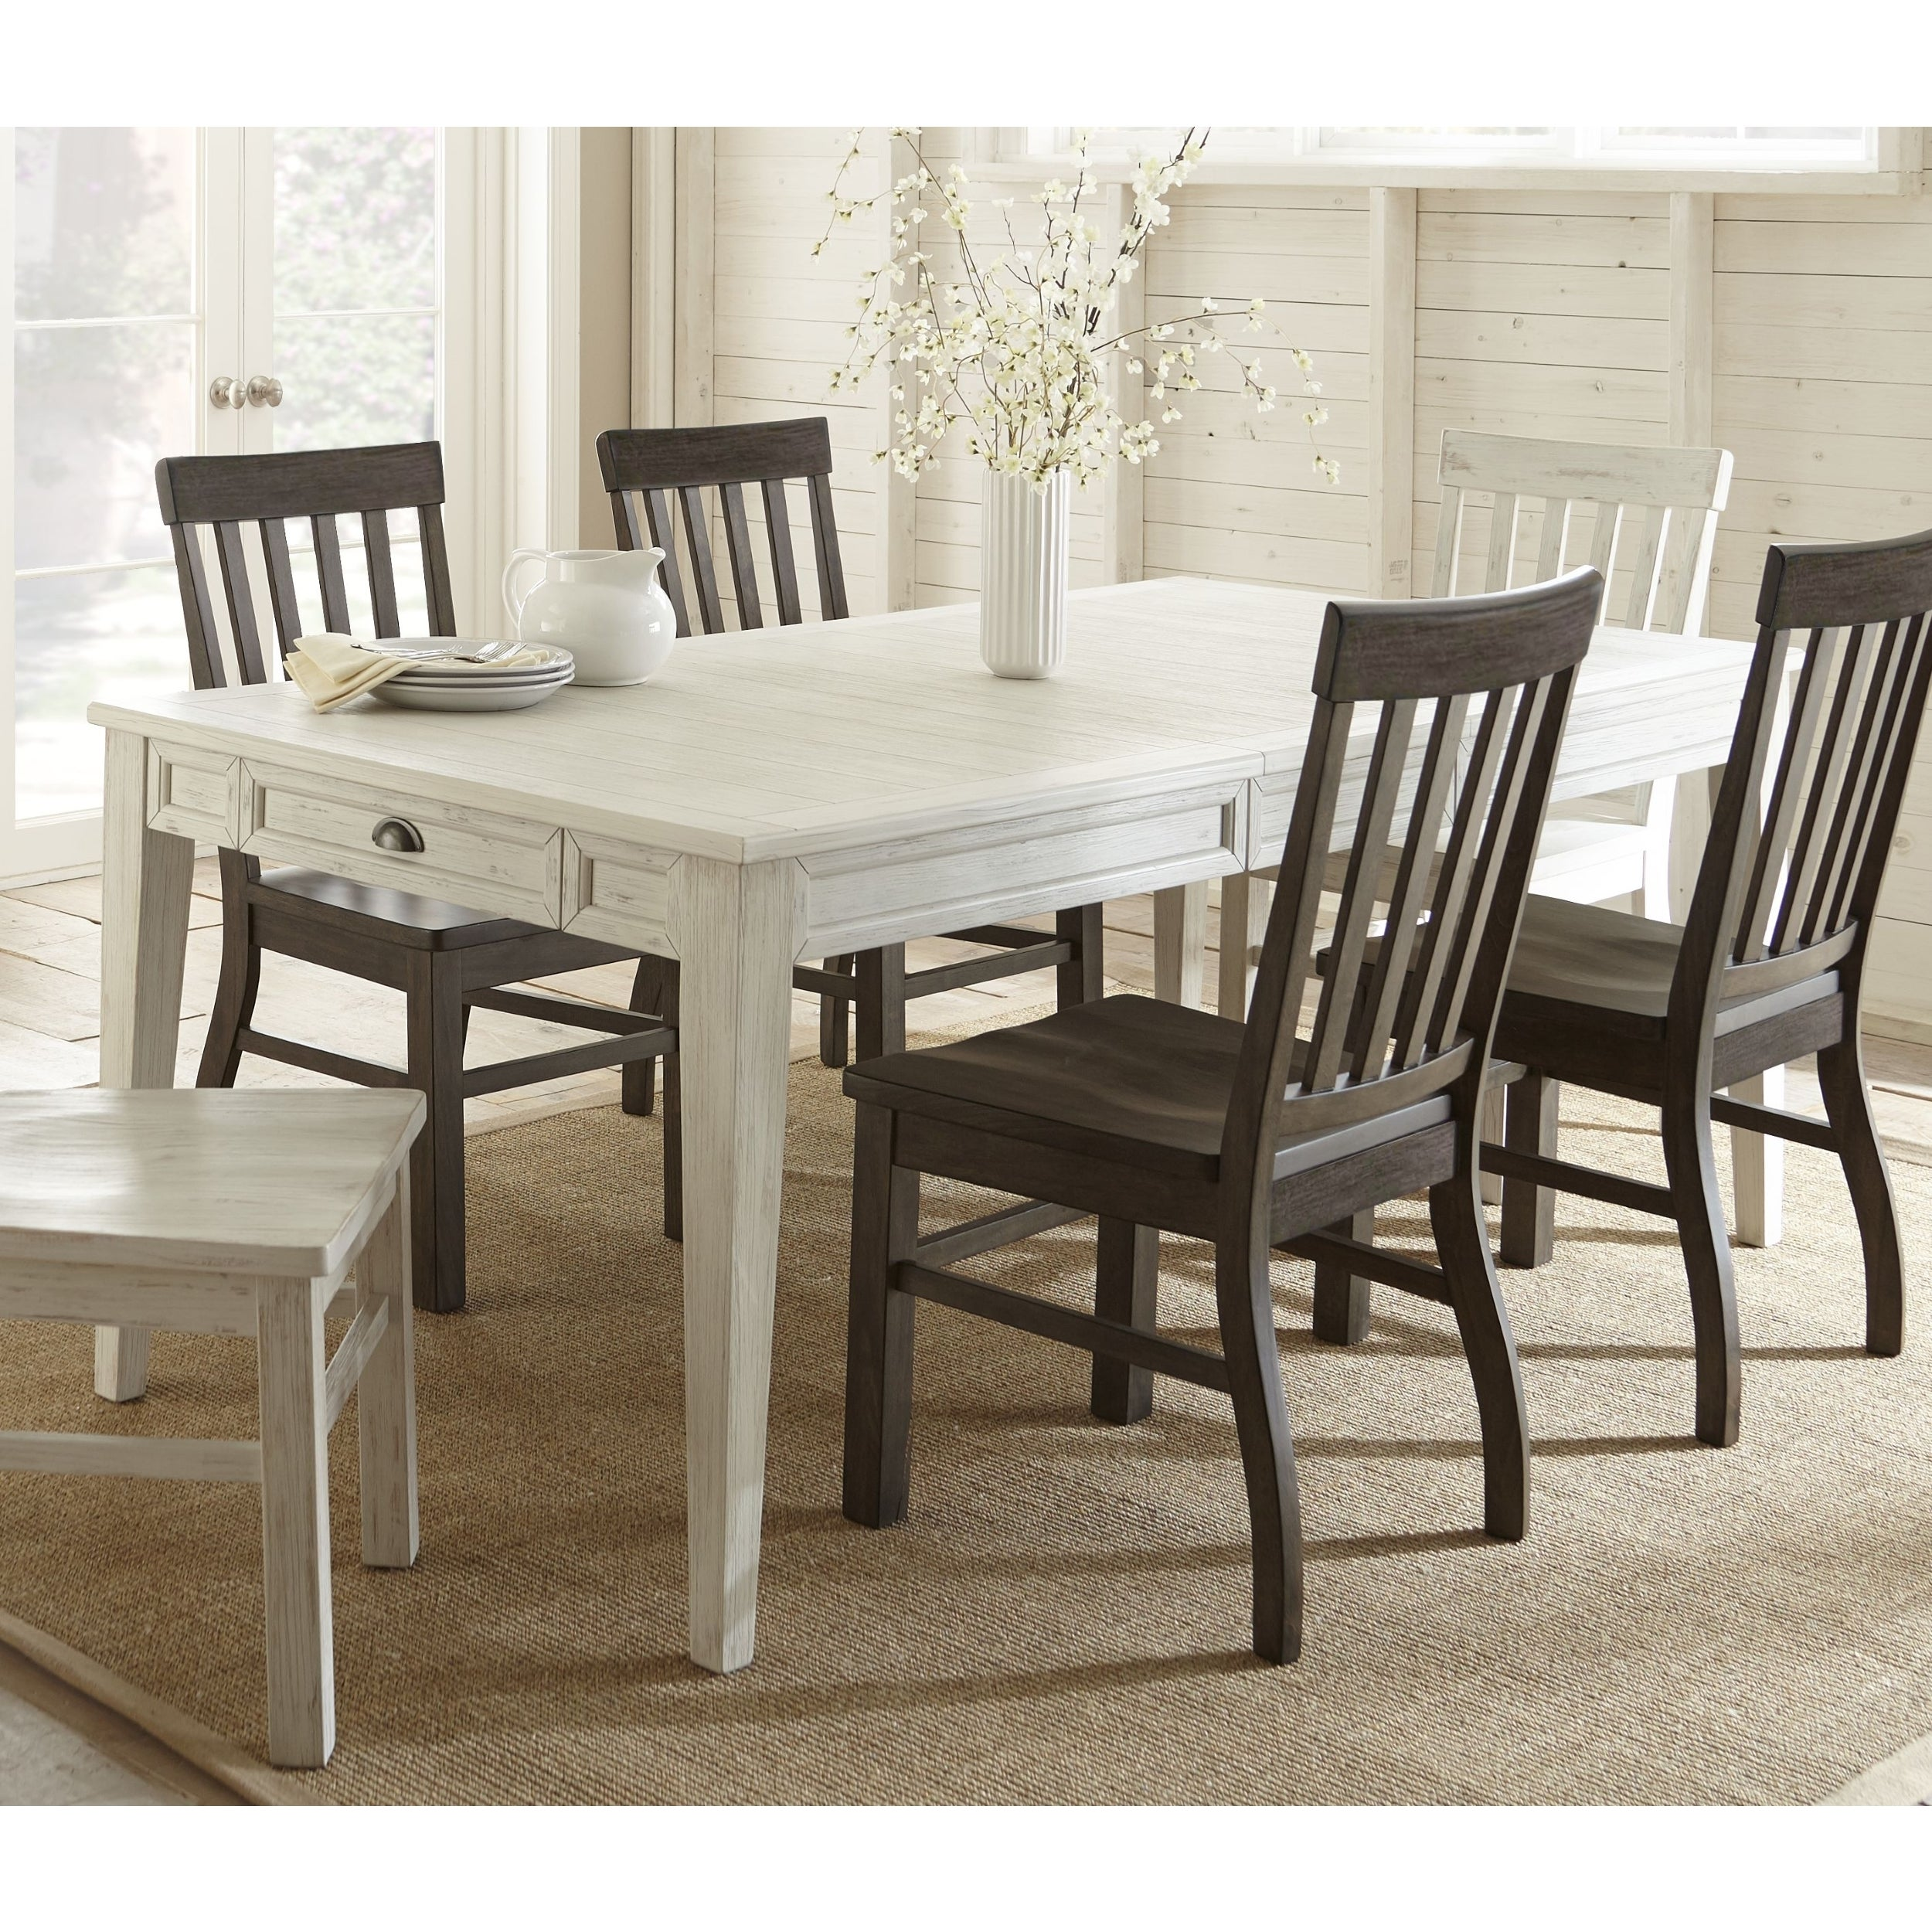 Cottonville White Wooden 80 Inch Farmhouse Storage Dining Table By Greyson Living Antique